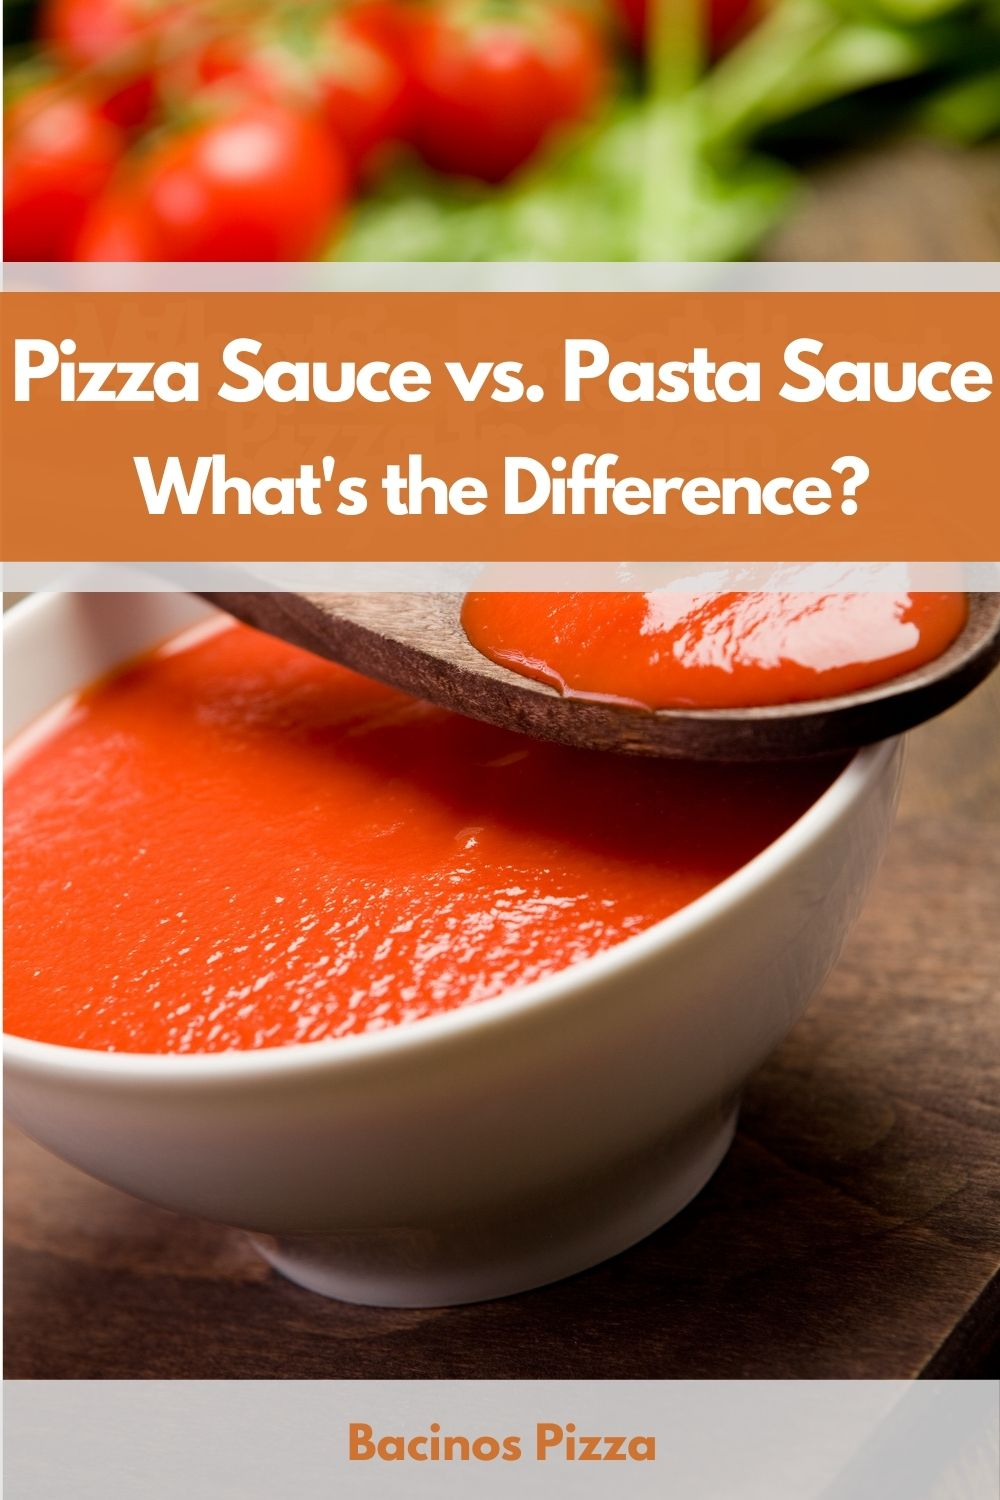 Pizza Sauce vs. Pasta Sauce What's the Difference pin 2